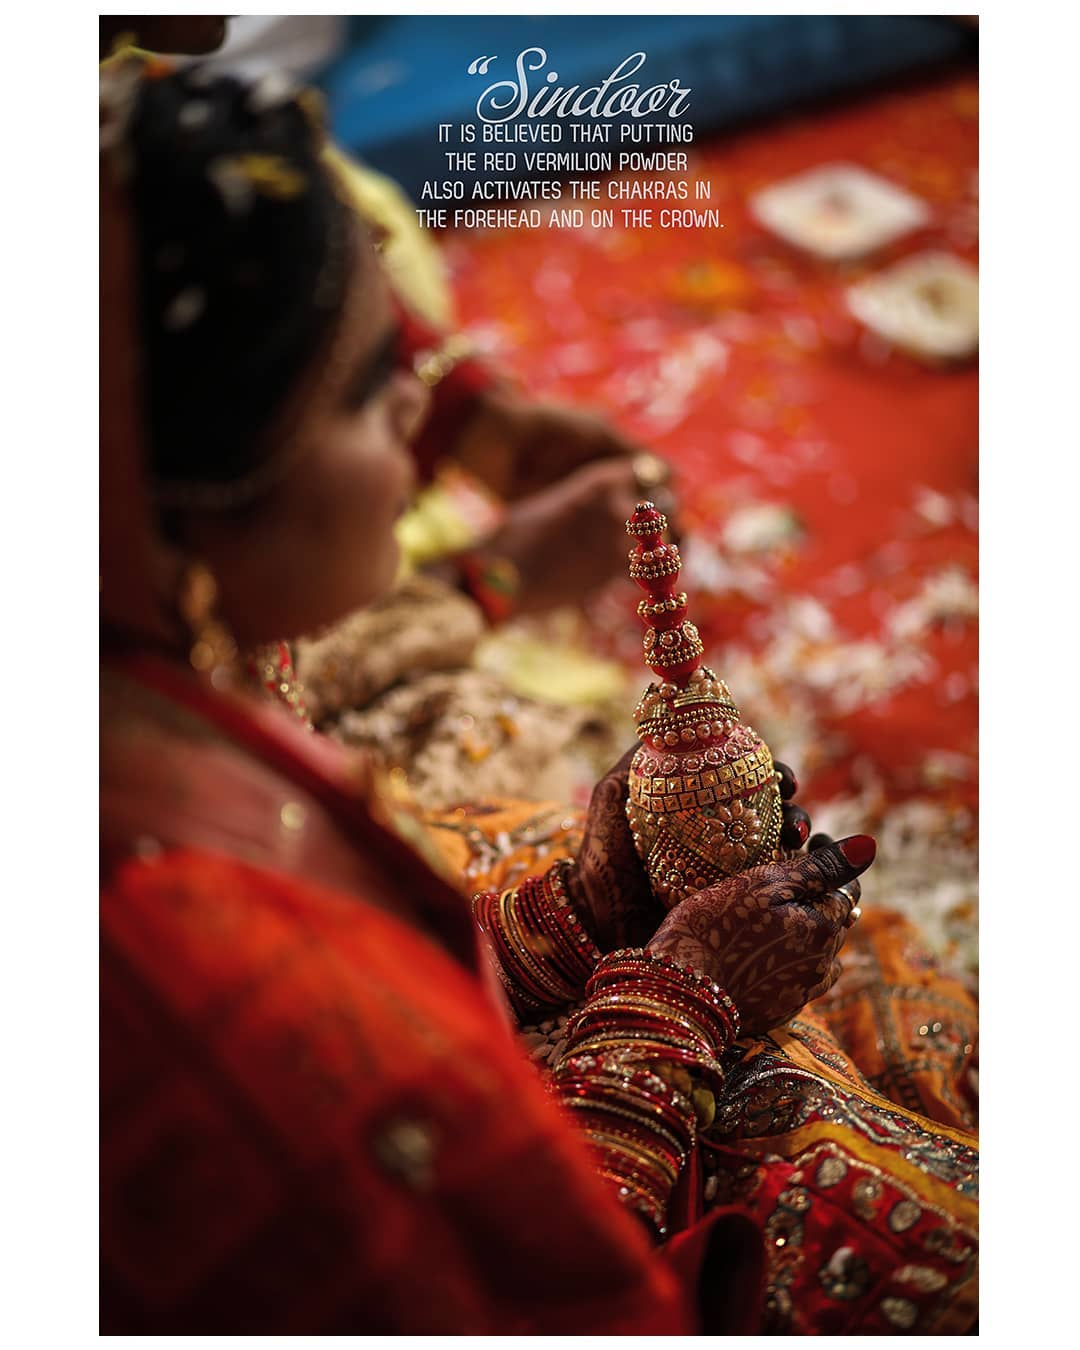 #Sindoor _ Symbolic of Married Hindu Woman. . . Sindoor is applied for the first time to a Hindu woman during the marriage ceremony when the bridegroom himself adorns her with it. The ceremony is called Sindoor-Dana and is very much in vogue even in present times. Religious scholars say that there has been no mention of this ceremony before the Grihasutras hence it is considered to be a relatively new practice.... .  Sindooor or vermilion holds lot of importance in Indian society. The tradition of application of sindoor in the parting of hair by married Hindu women is considered extremely auspicious and is being carried on since centuries. . . Symbolic of Married Hindu Woman In traditional Hindu society, wearing sindoor is considered must for married Hindu women. It is a visible expression of their desire for their husbands' longevity. Traditionally therefore, widows did not wear vermilion. . . . #hinduwedding #bride #hinduweddingphotographer #weddingphotography  Weddding shoot @dip_memento_photography  #bridetobe #coupleshoot #haldifunction #bridal #brideandgroom #beautifulbride #bridal #haldi #groom #groomandbride #groomandgroom #beautifulfoodforyou. #celebration #weddingsku #weddingsutra #weddingseason #BetterTogether #beautifulbride #BetterTogether #brideandgroom